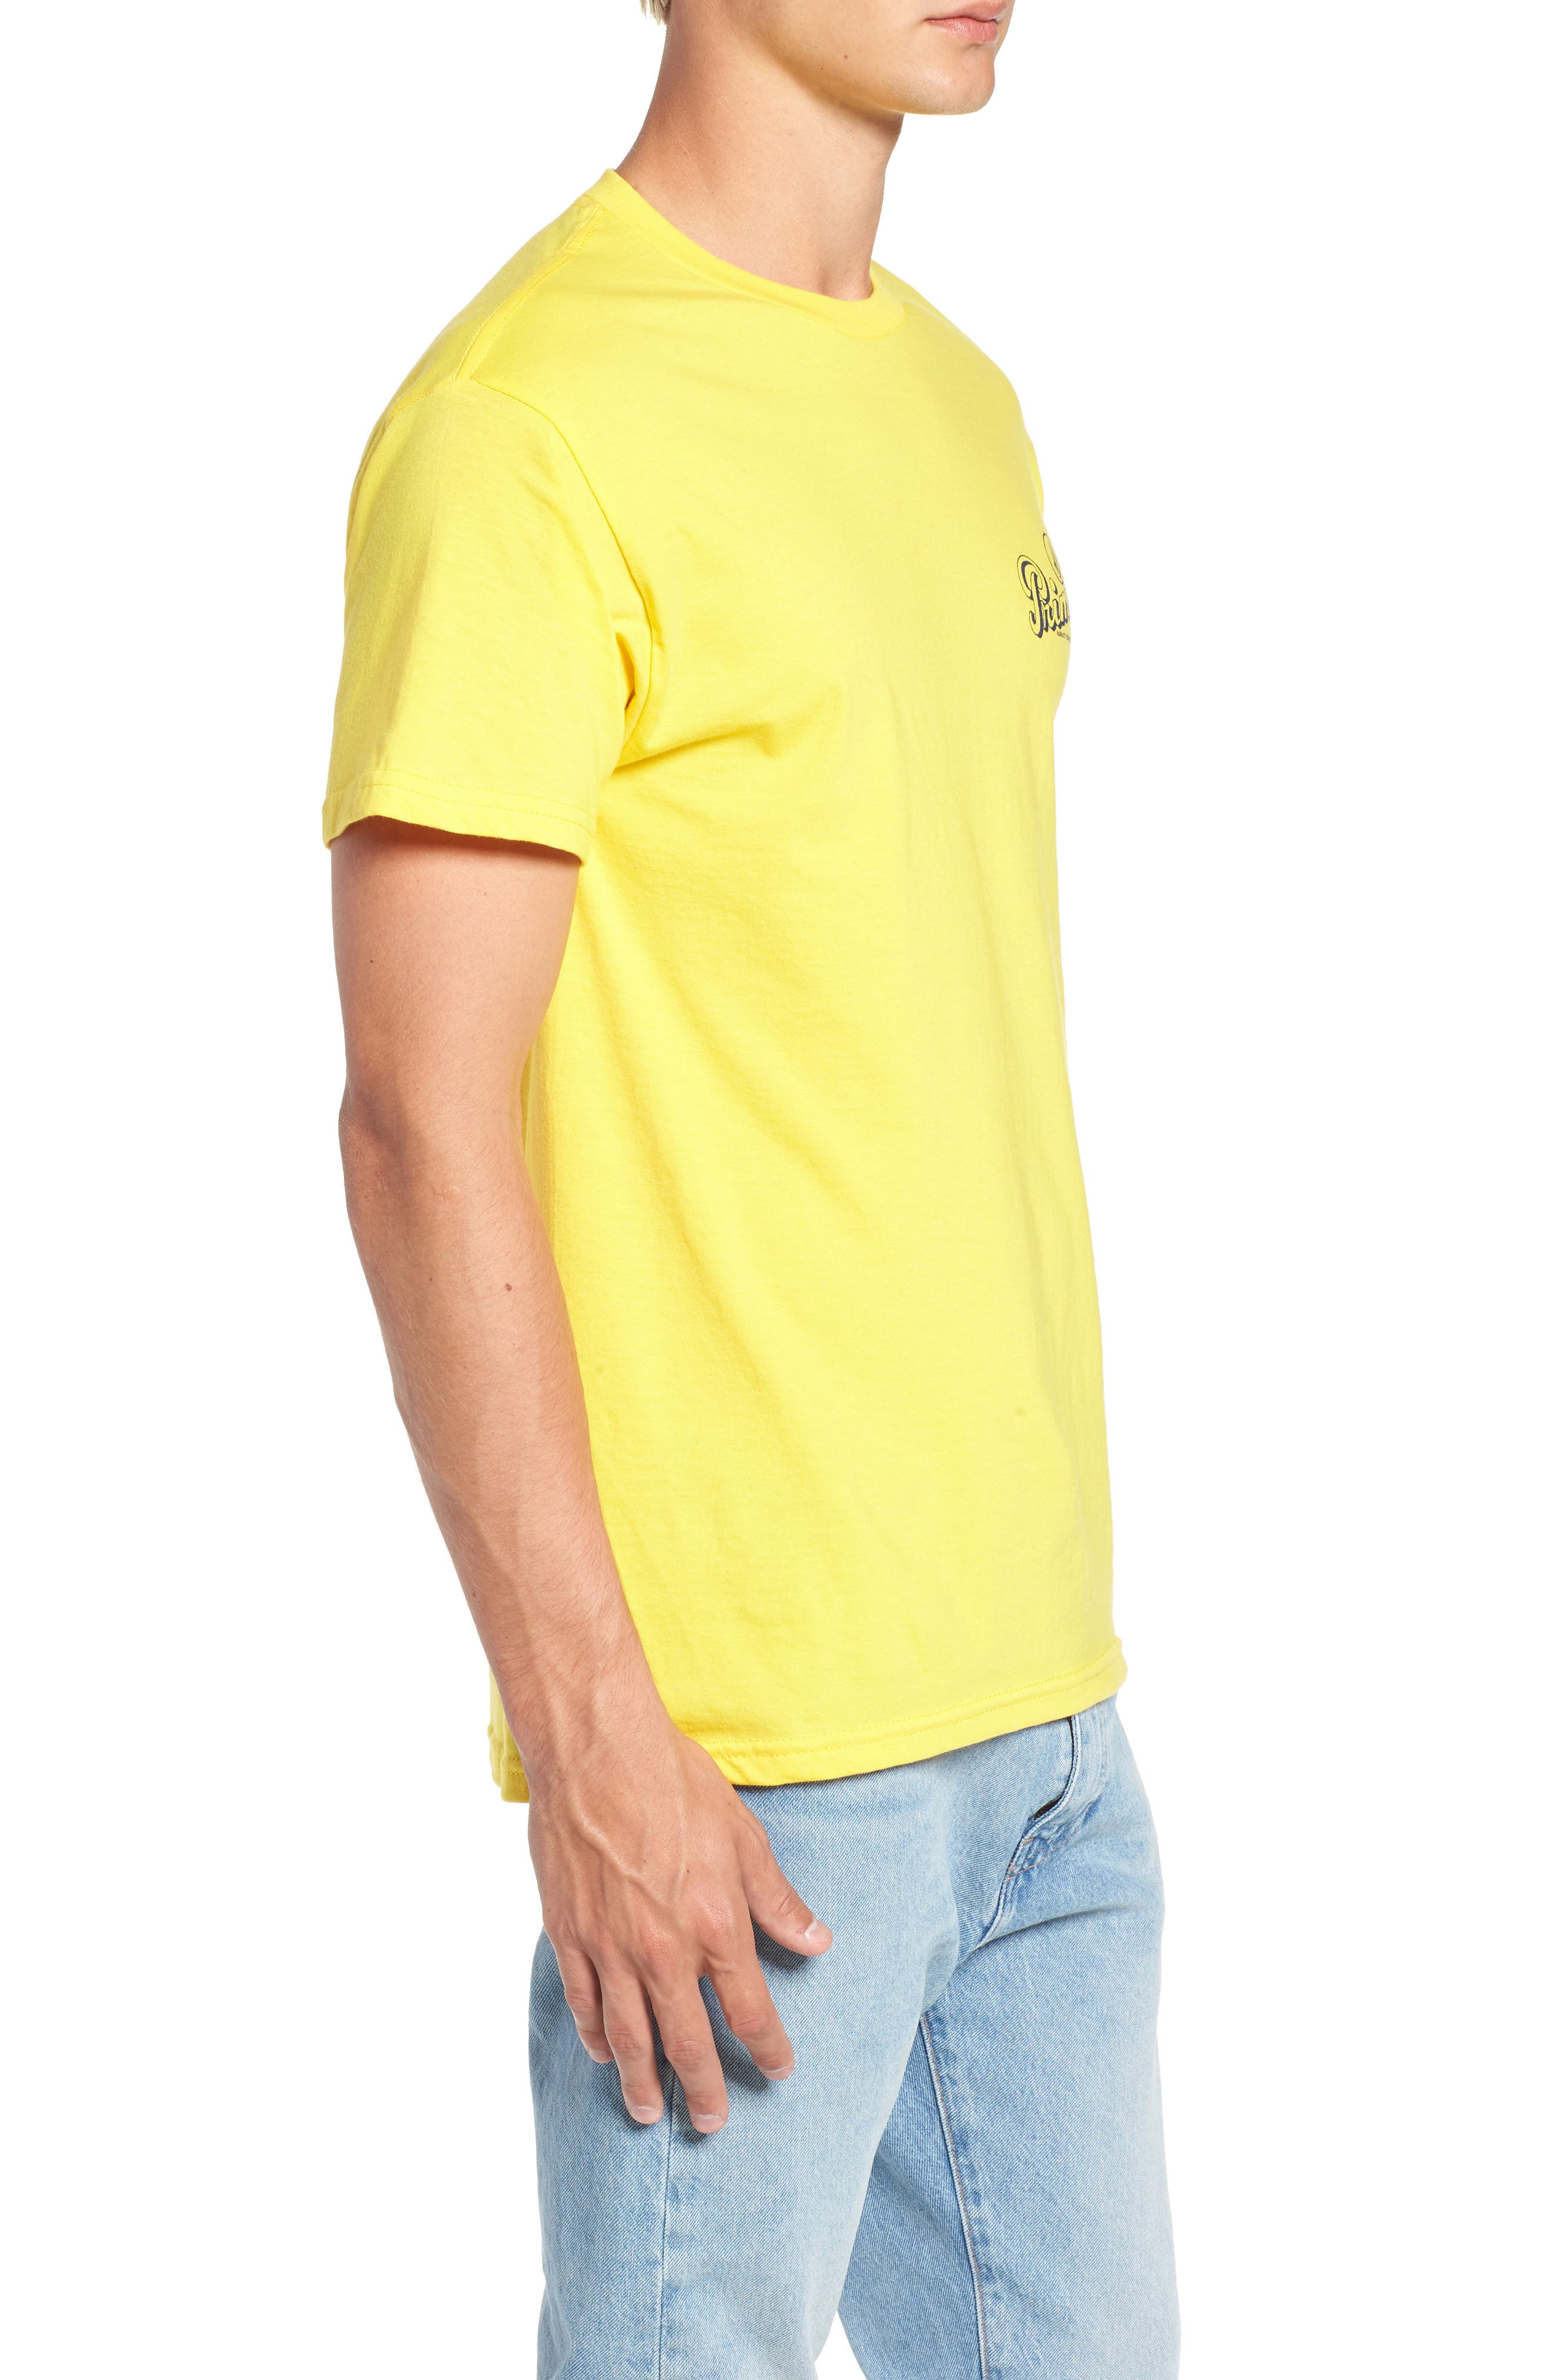 Primo Island T-Shirt,                             Alternate thumbnail 3, color,                             CYBER YELLOW